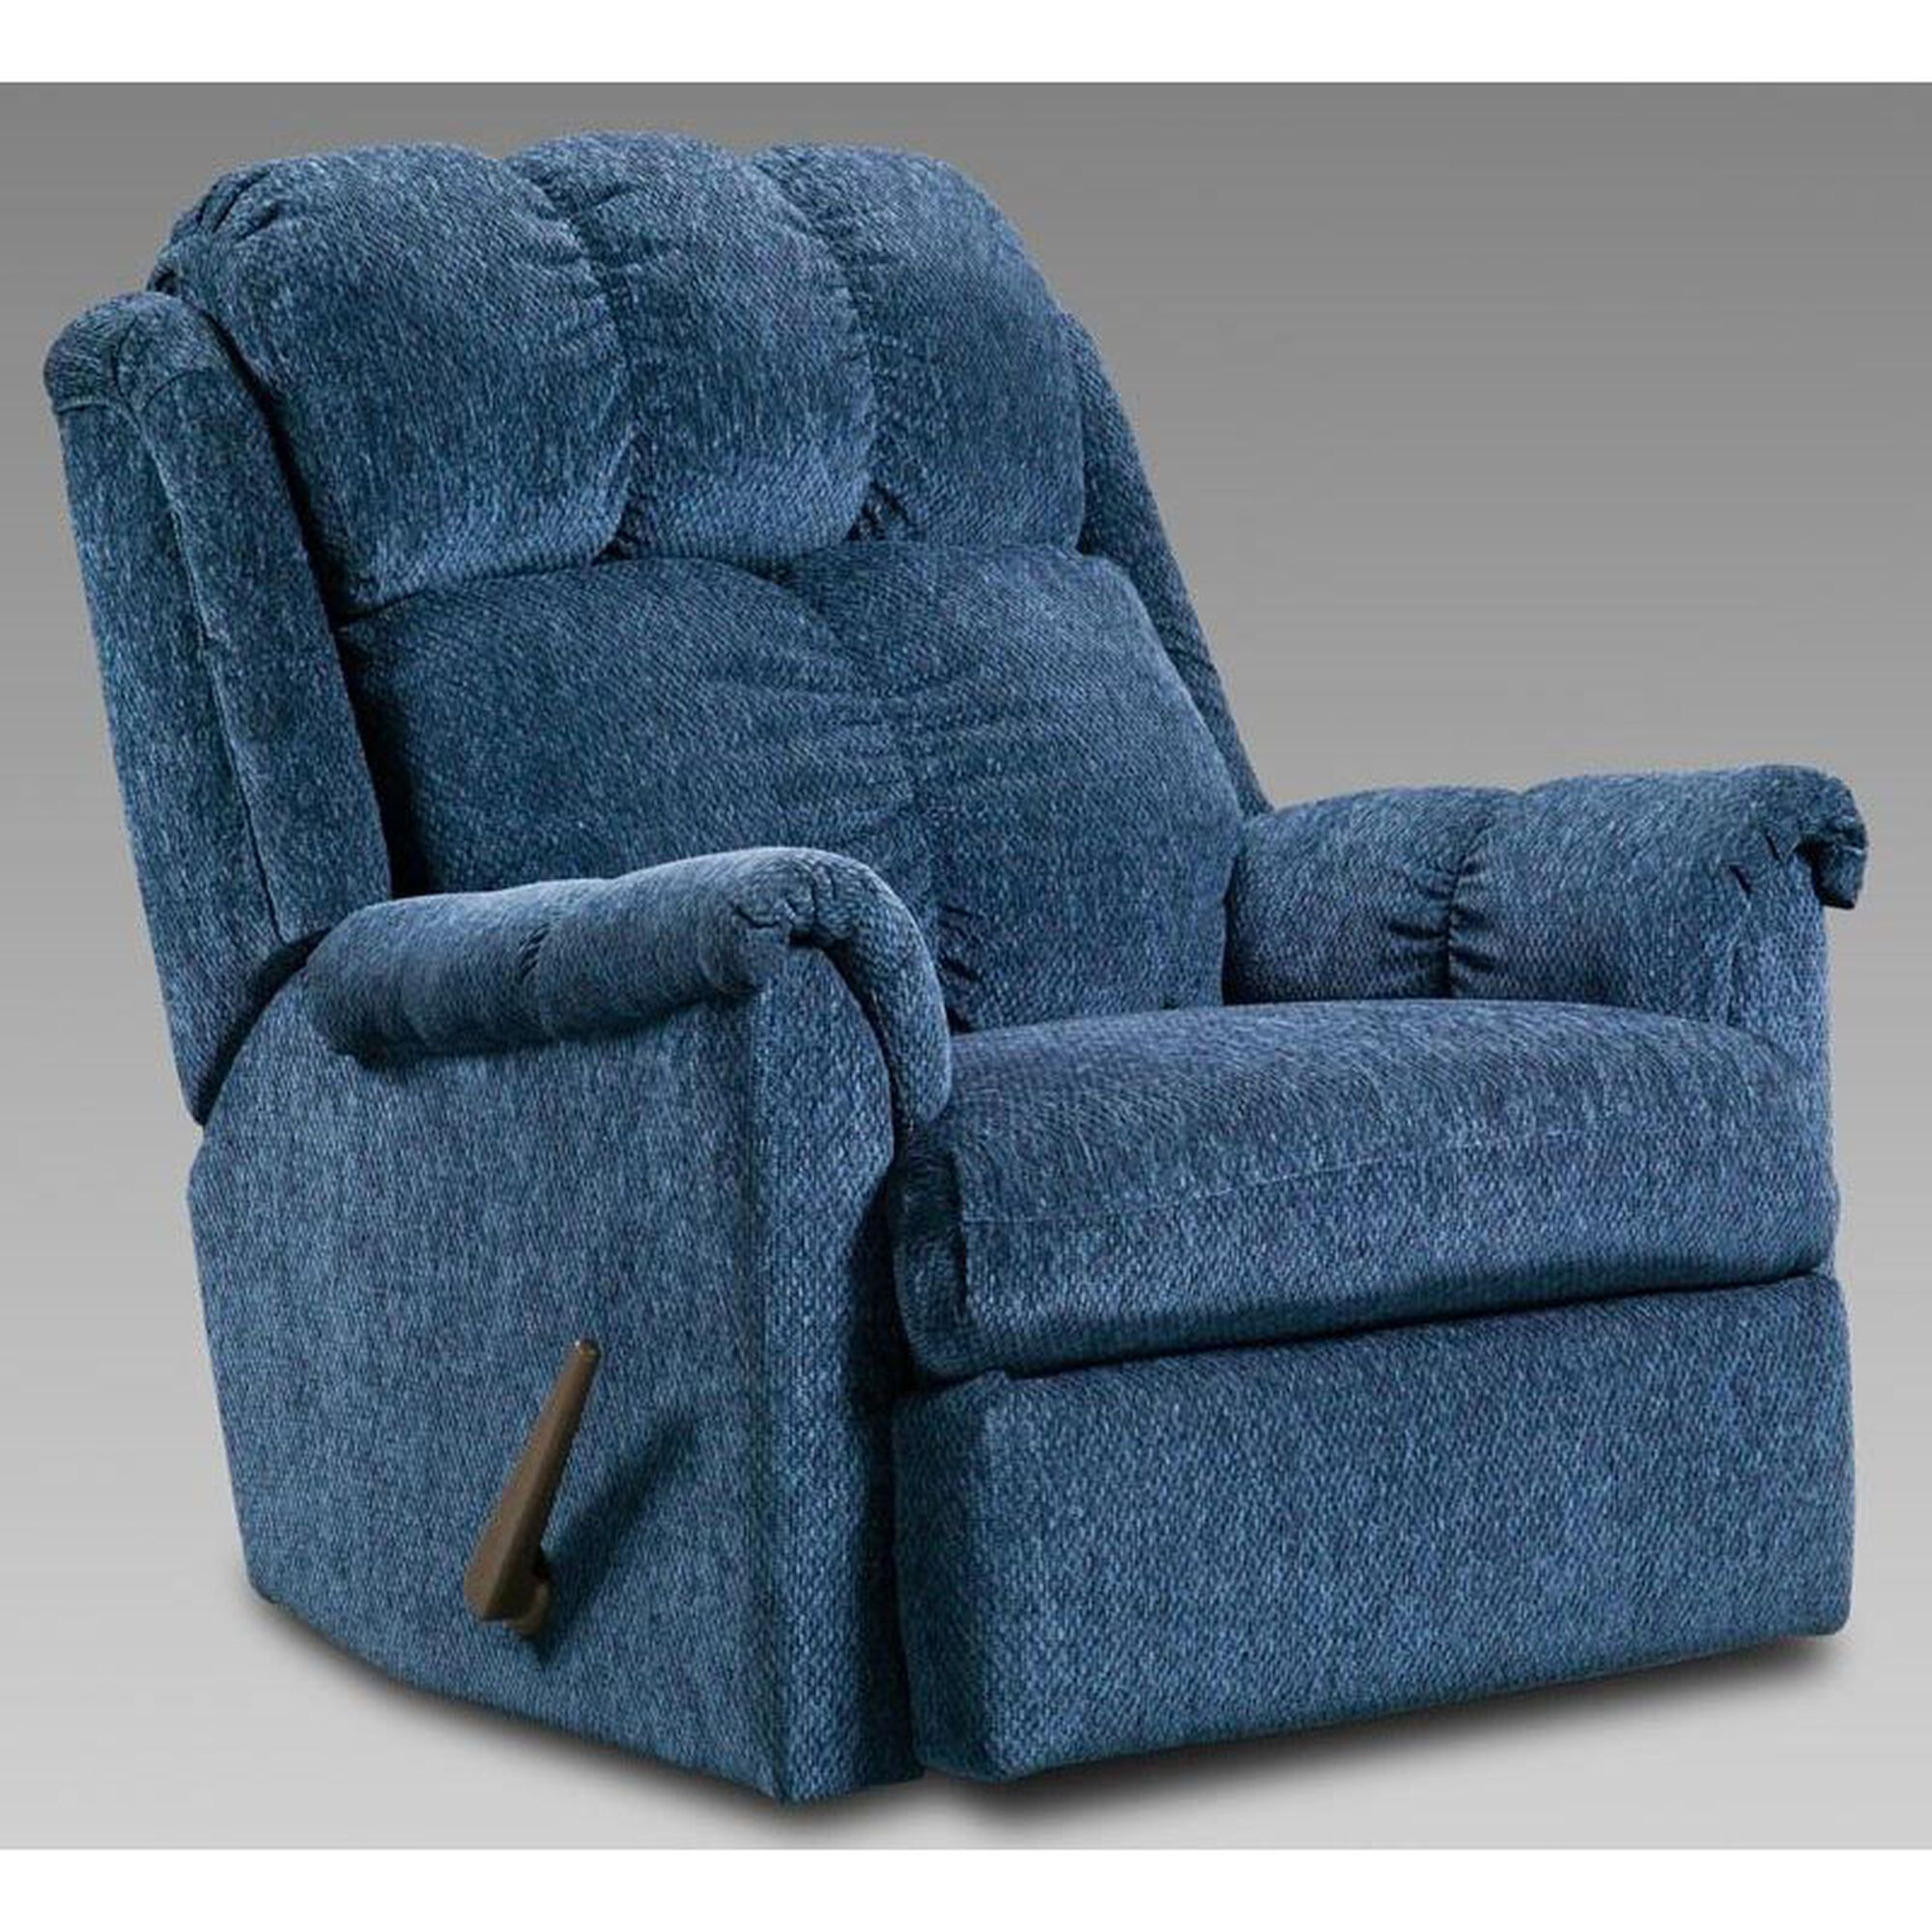 Chelsea home furniture 2100 tbl chel 192100 tbl - Stylish rocker recliner ...